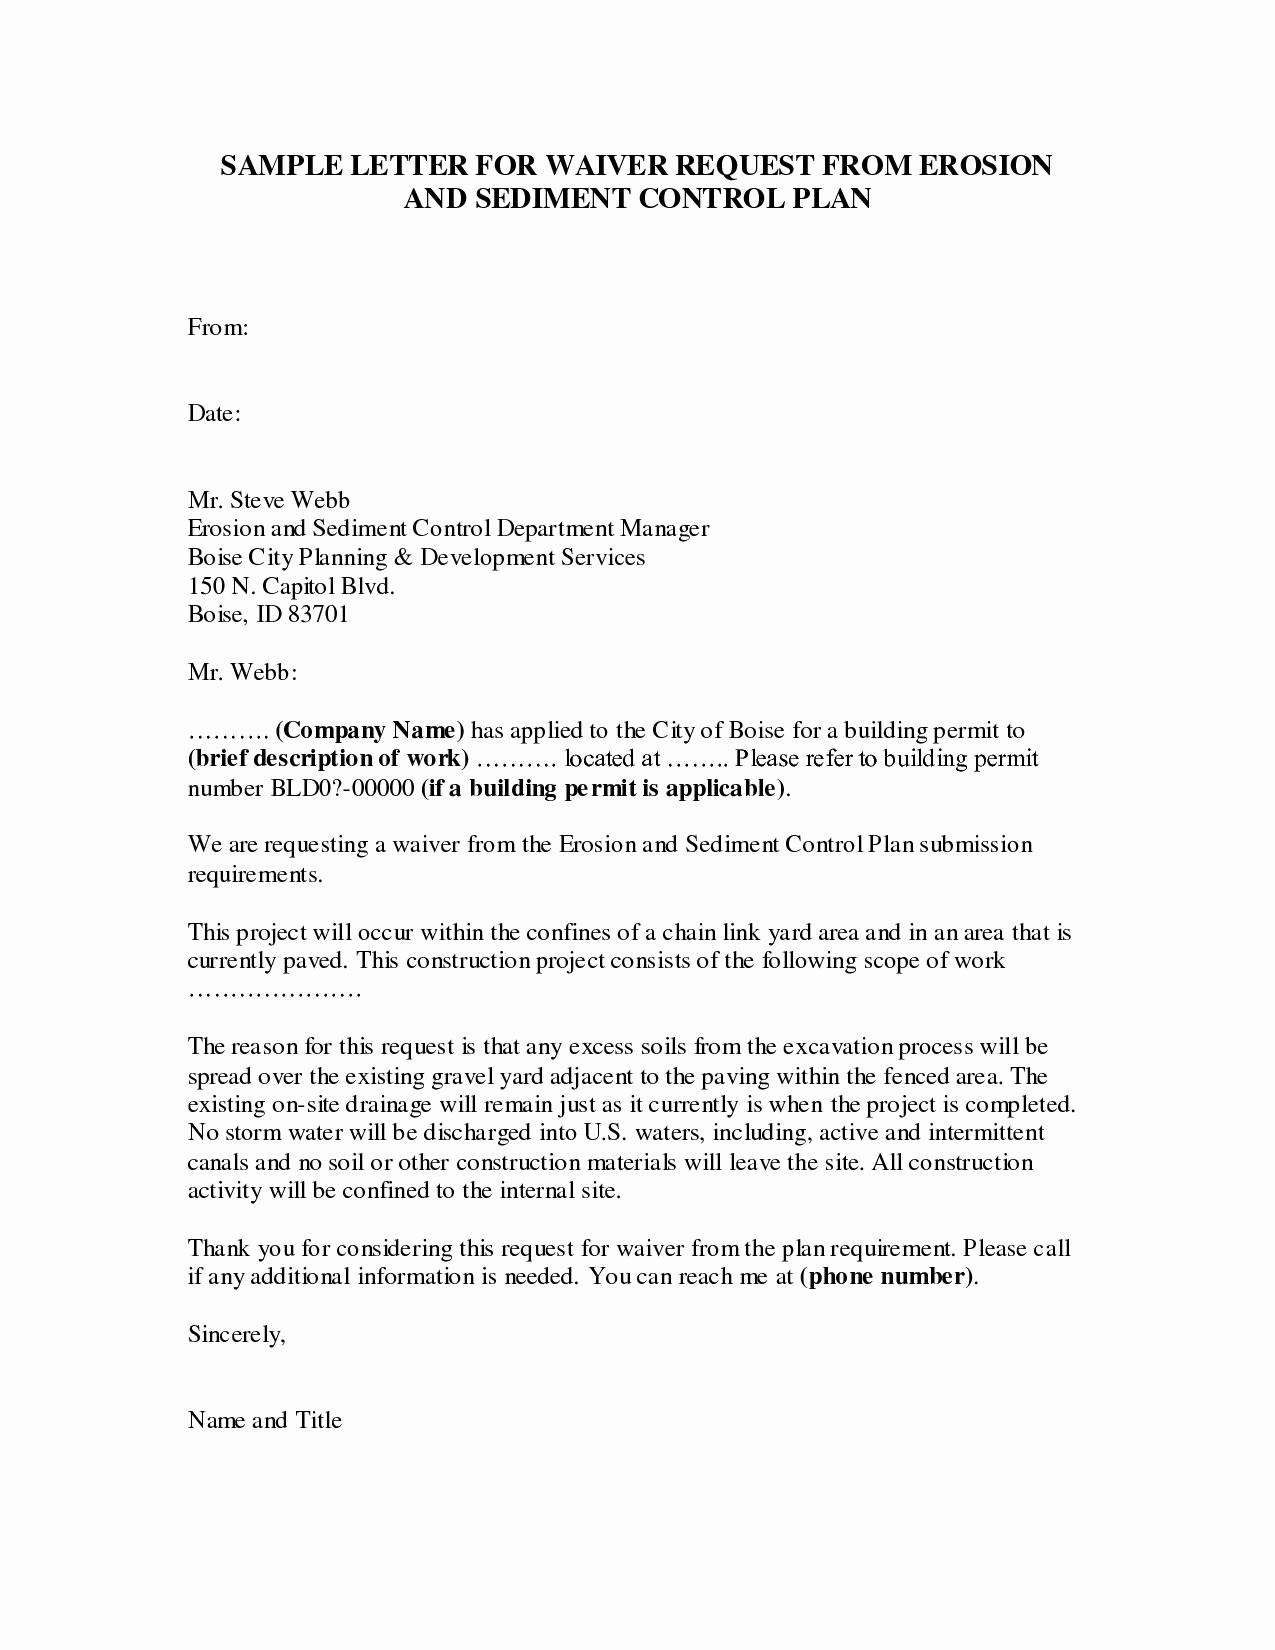 Contract Termination Letter Template - 20 Sample Contractor Termination Letter